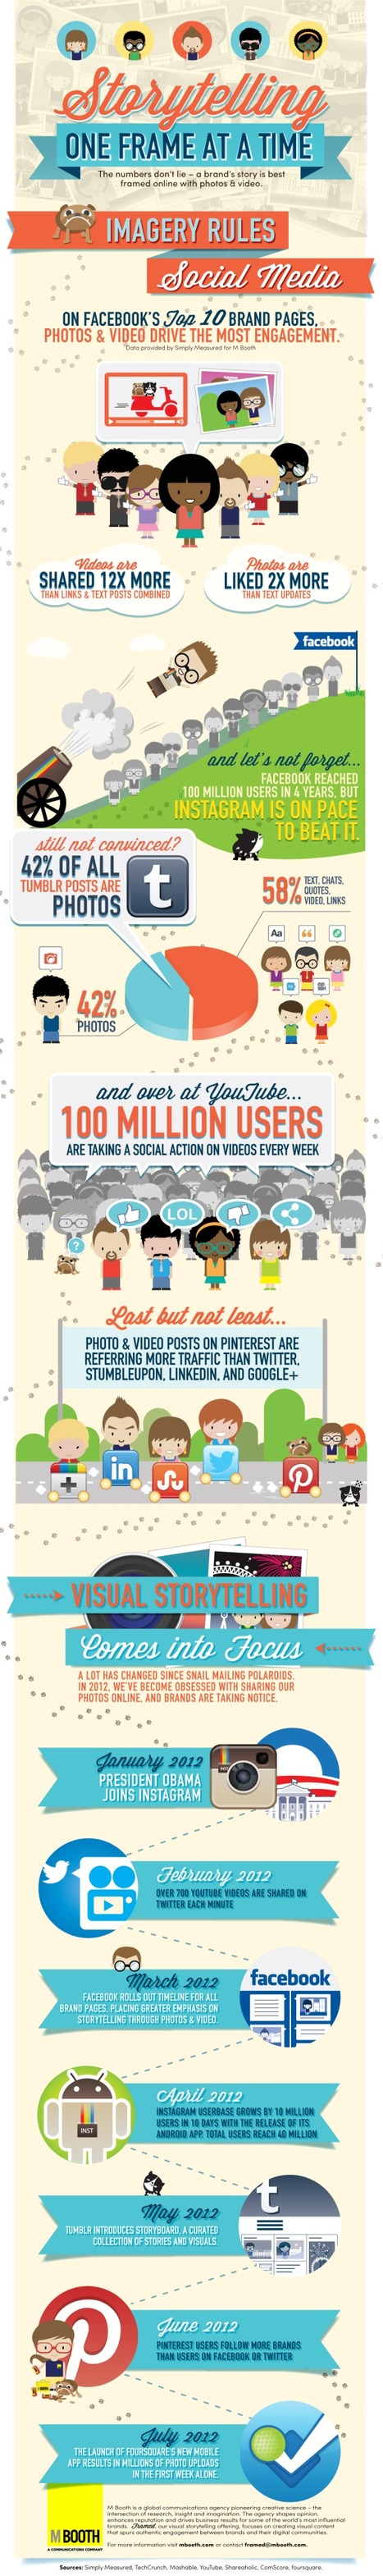 Visual Content Trumps Text in Driving Social Media Engagement [INFOGRAPHIC] | Social Media and Web Infographics hh | Scoop.it